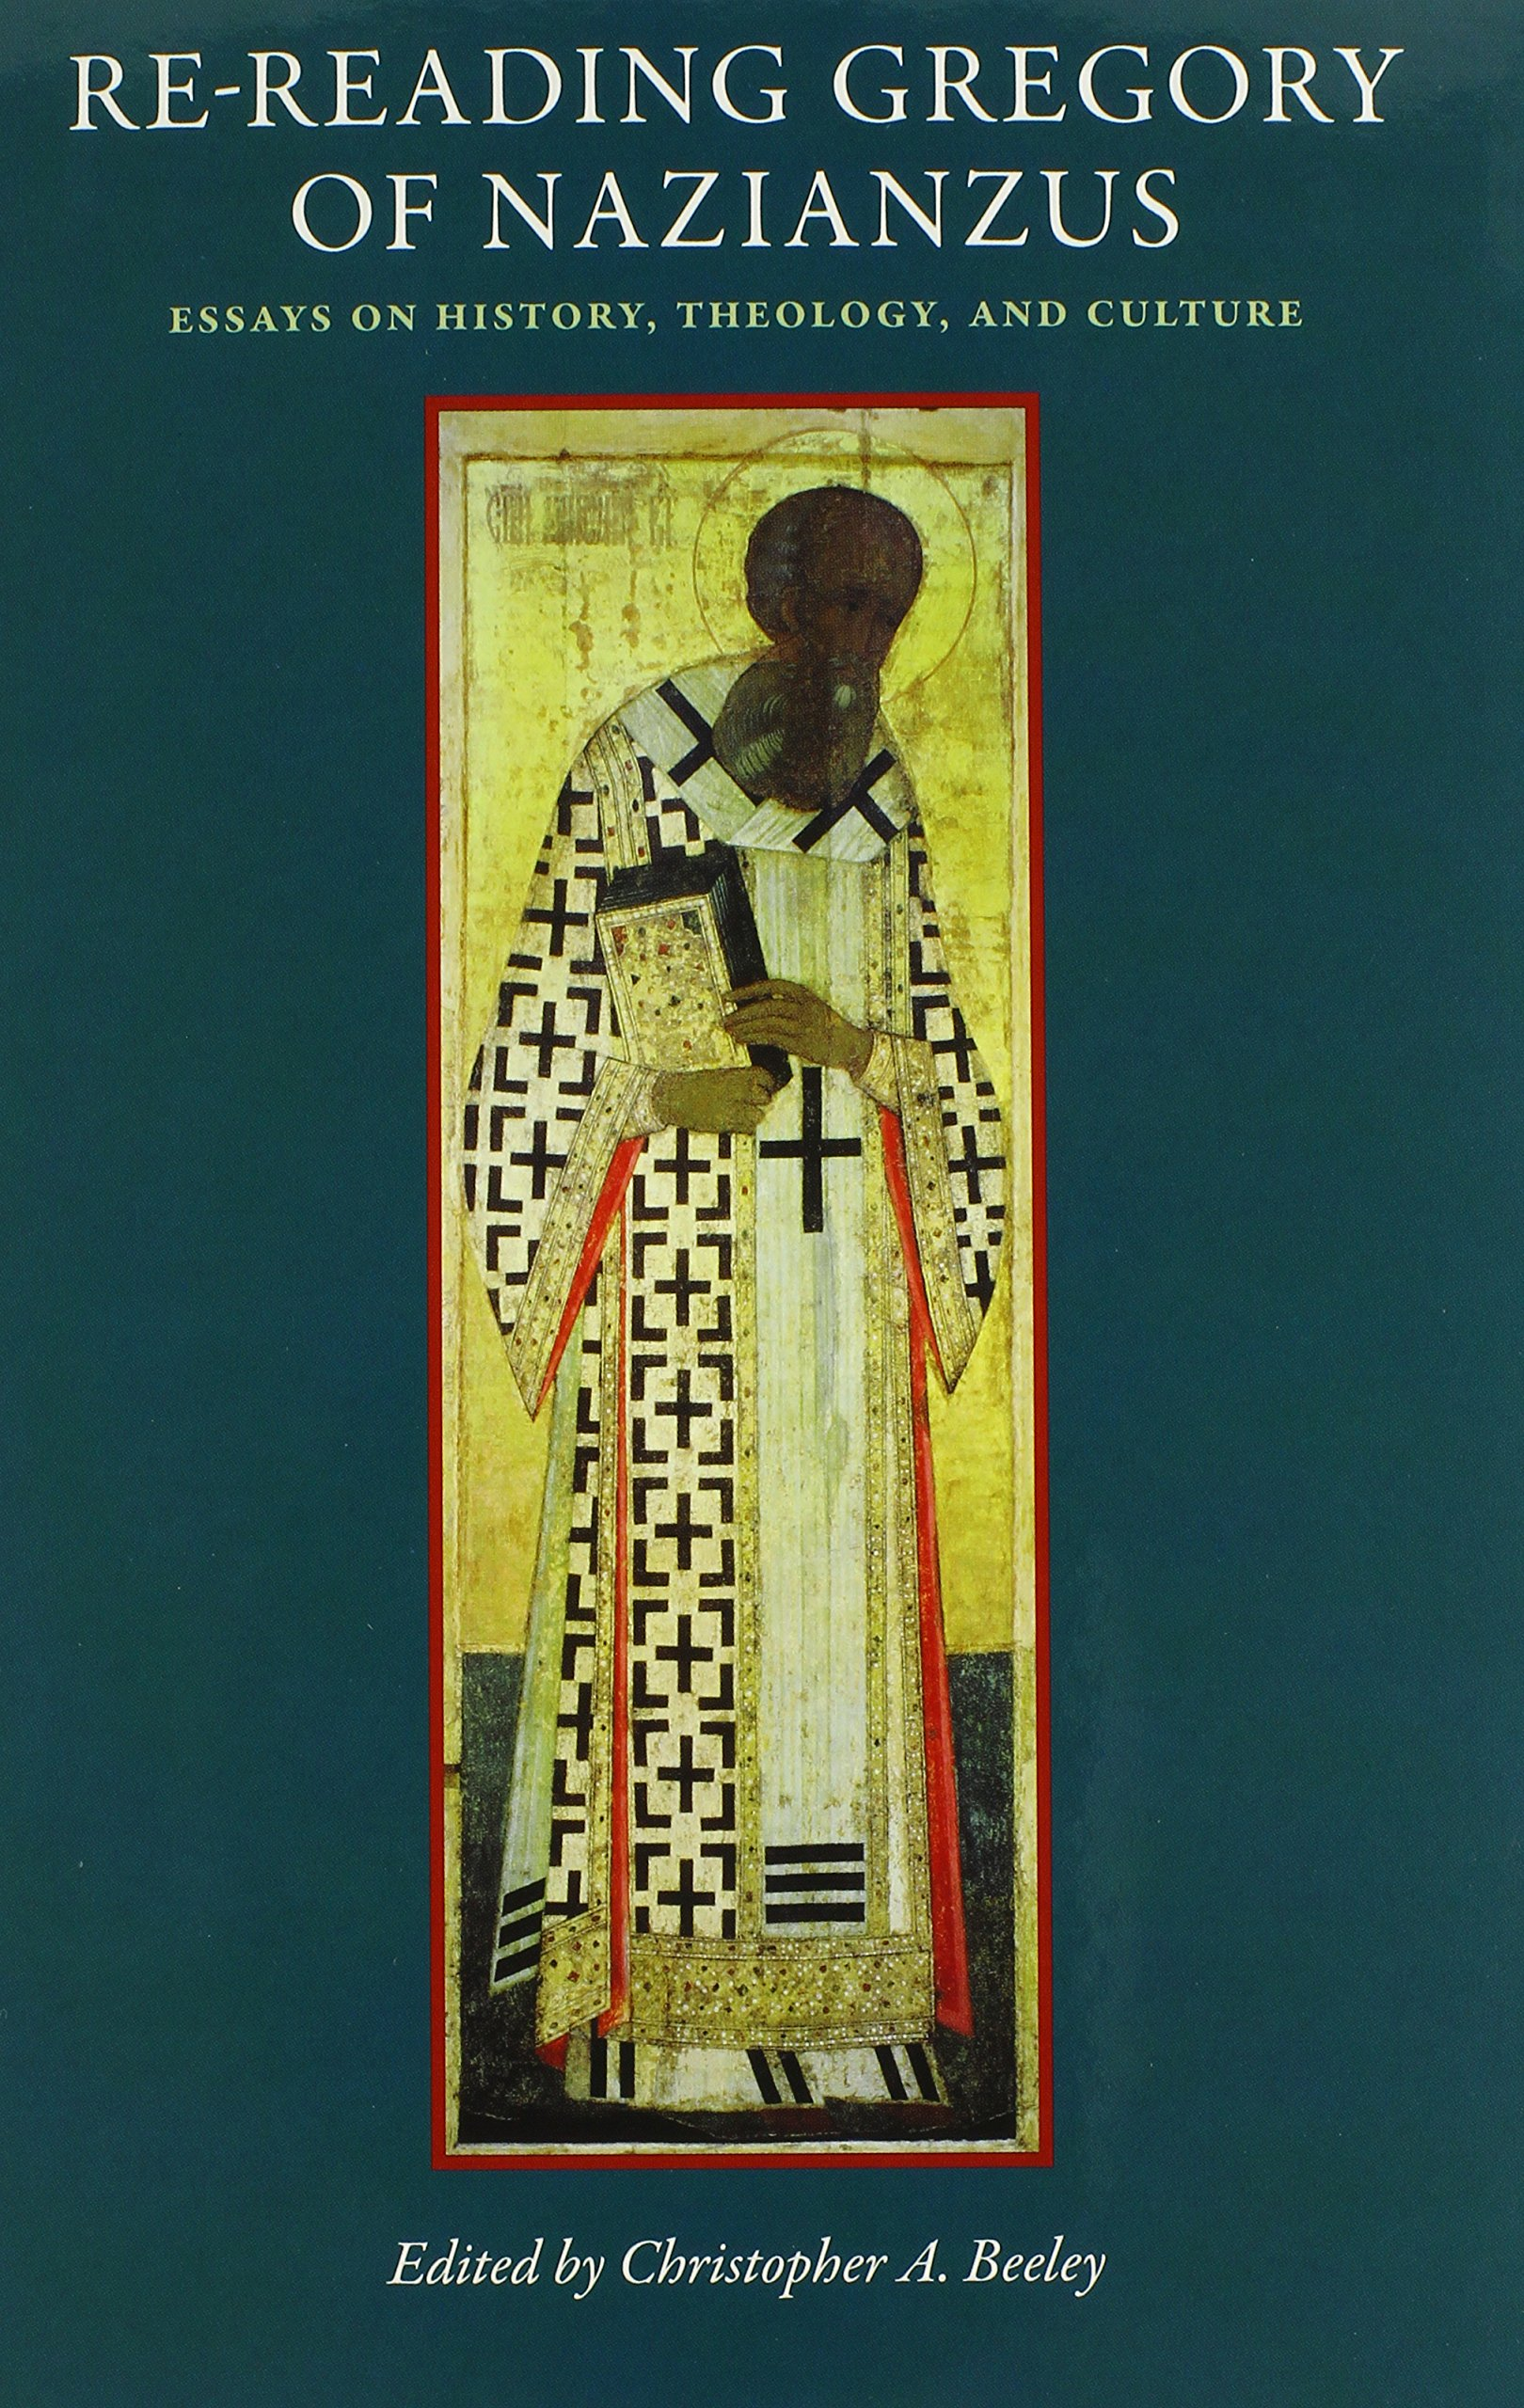 Re-Reading Gregory of Nazianzus: Essays on History, Theology, and Culture (Studies In Early Christianity) pdf epub